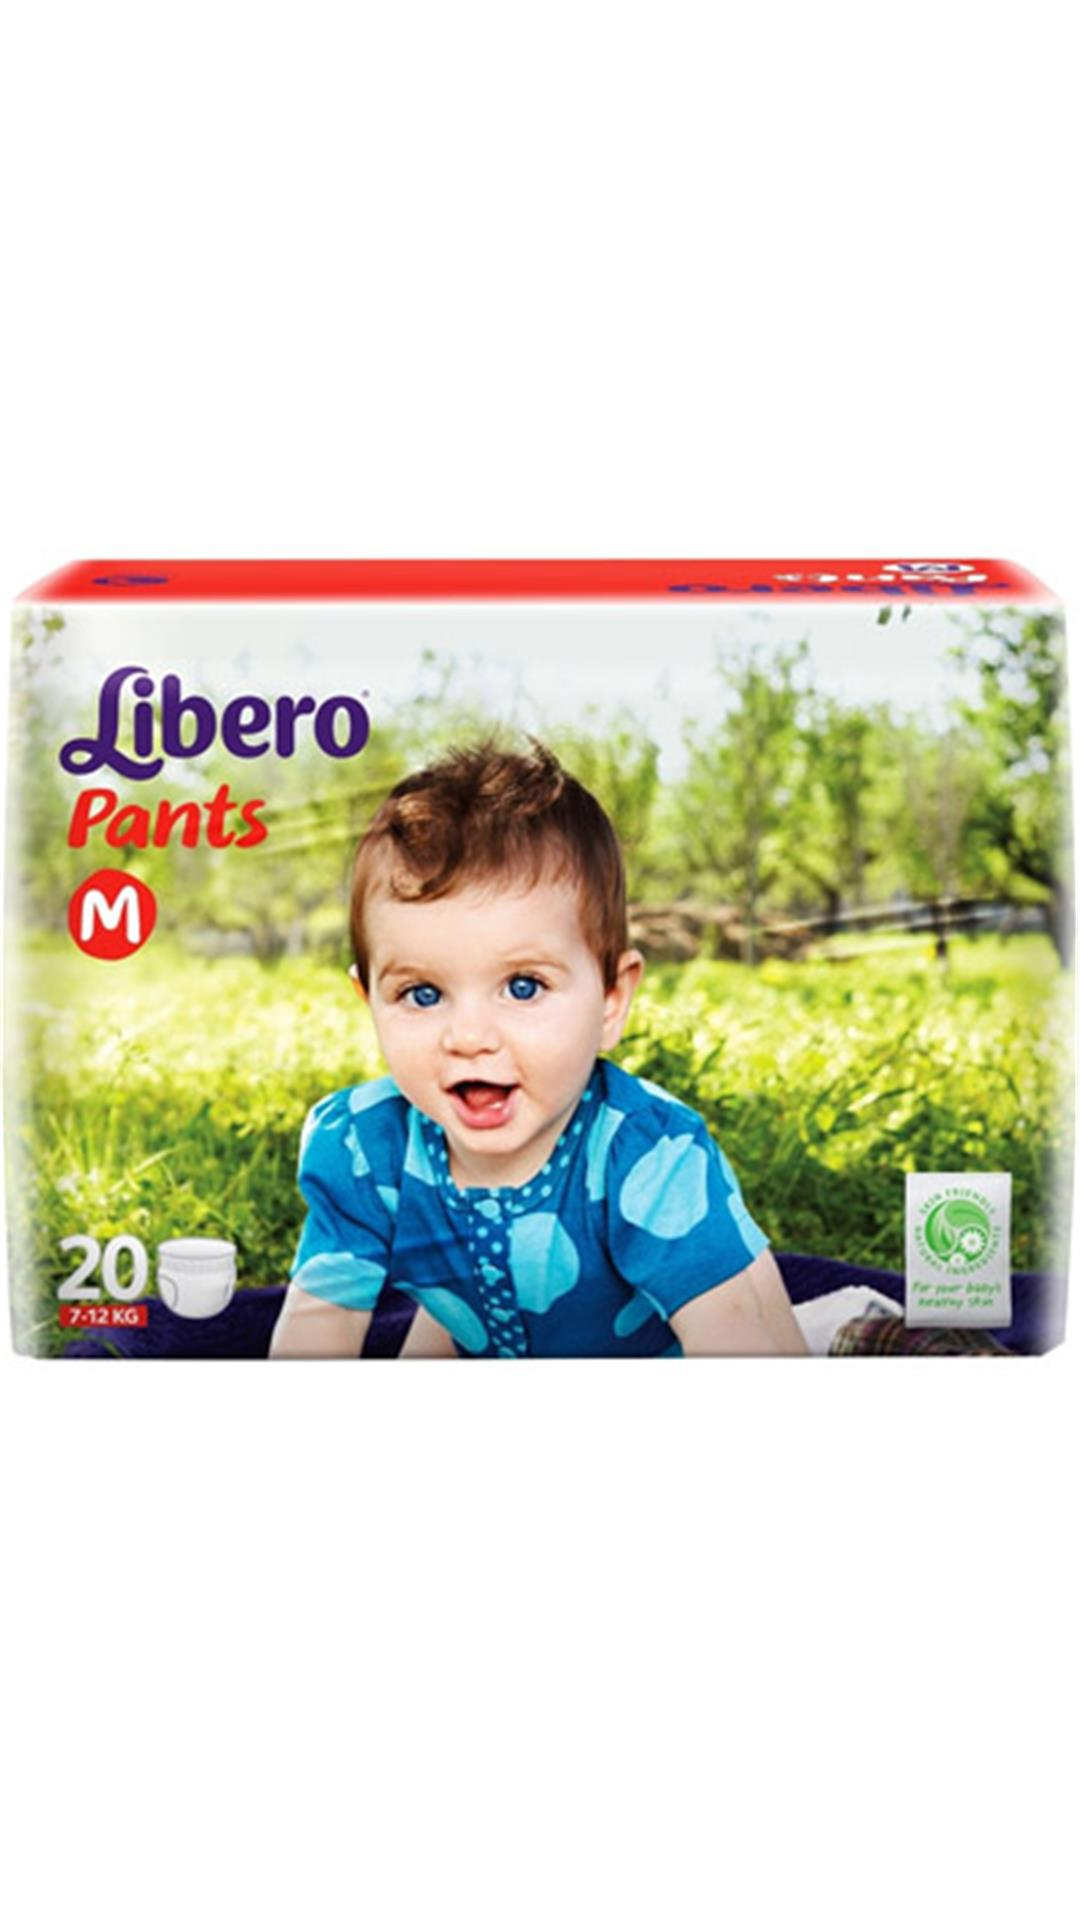 Libero Pants Diaper M - 20 Pcs(Pack of 3)